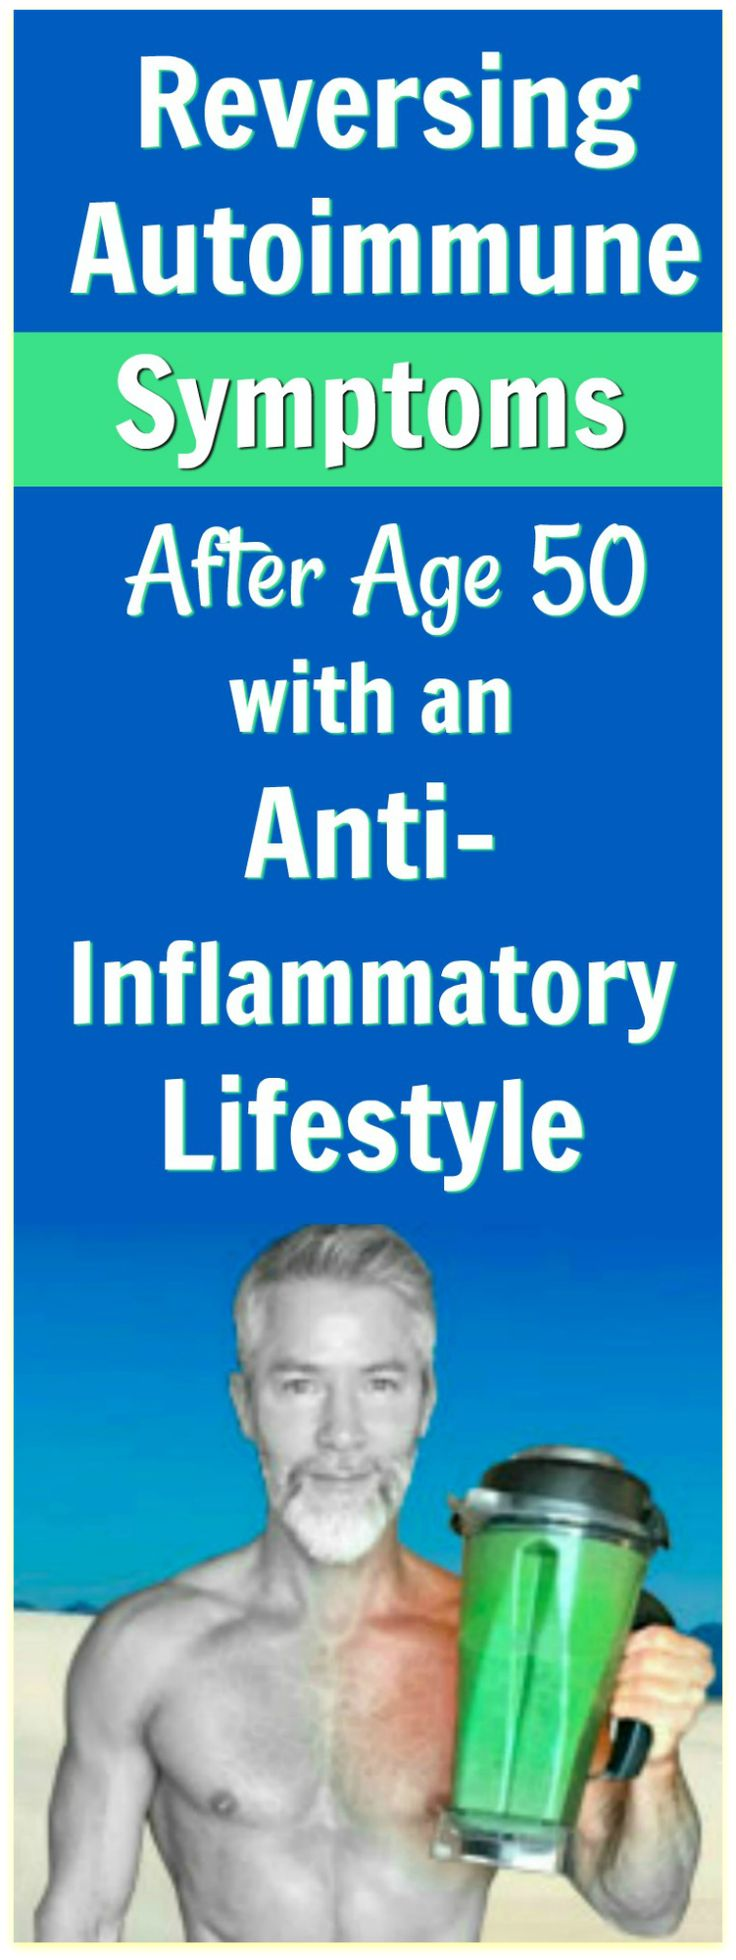 The good news is: the longer you stick with your new lifestyle habits, the easier it becomes to follow them. These tips could prove helpful as you begin experimenting with living an anti-inflammatory lifestyle and lessening your autoimmune symptoms. Get ready to thrive! #wellness #autoimmune #antiinflammatory #inflammation #healthier #over50 #nutrition #diet #protocol